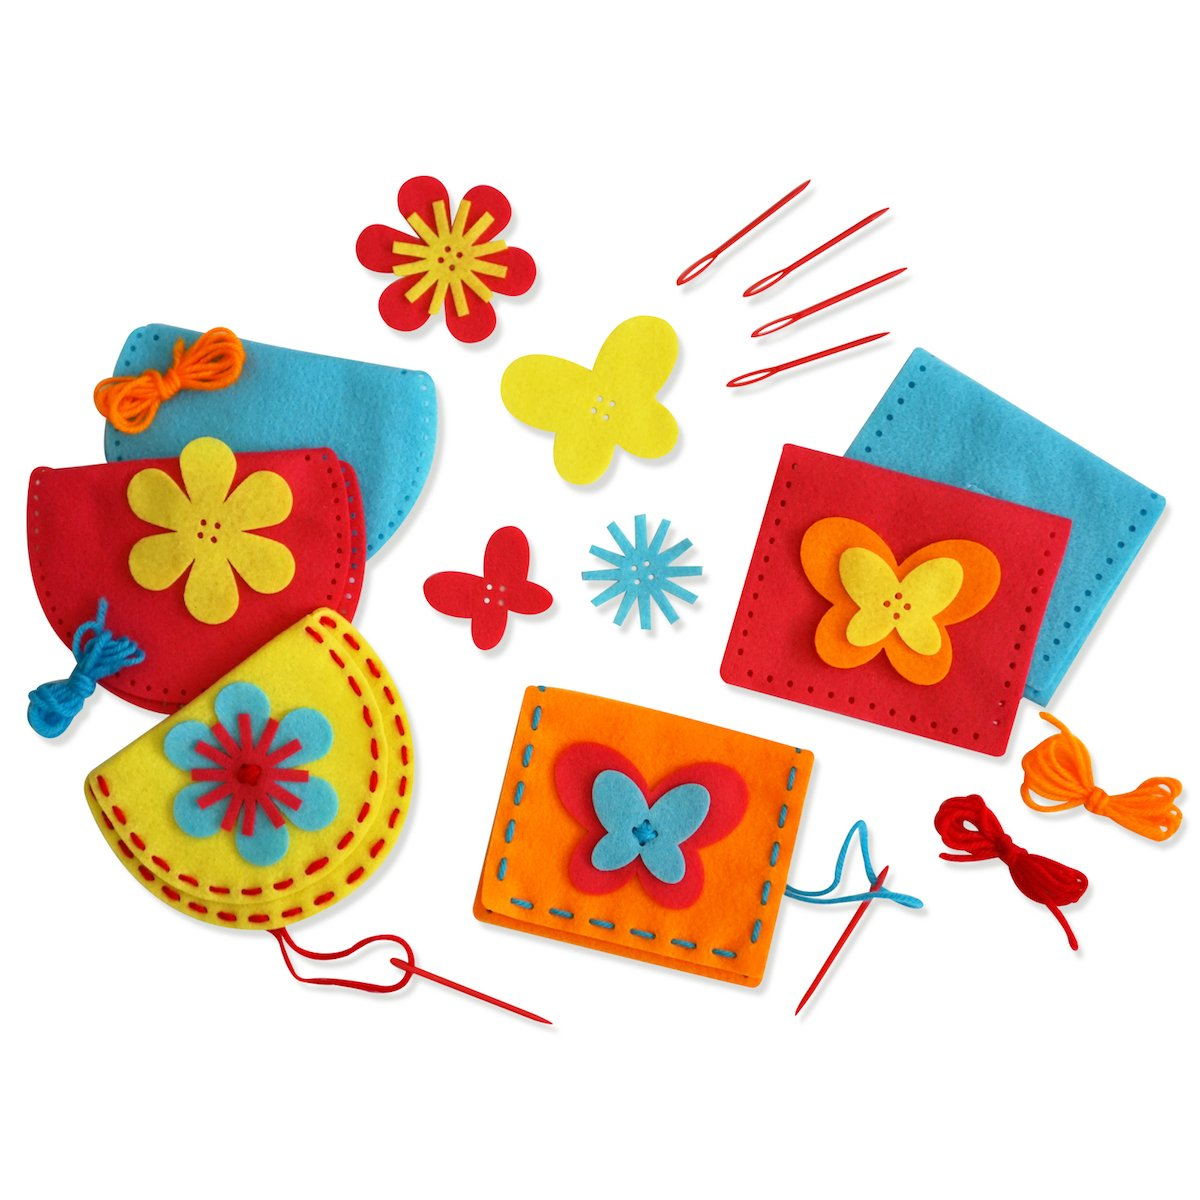 Serabeena Sew Your Own Purses - Easy and Fun to Do Sewing Kit for Girls by Serabeena